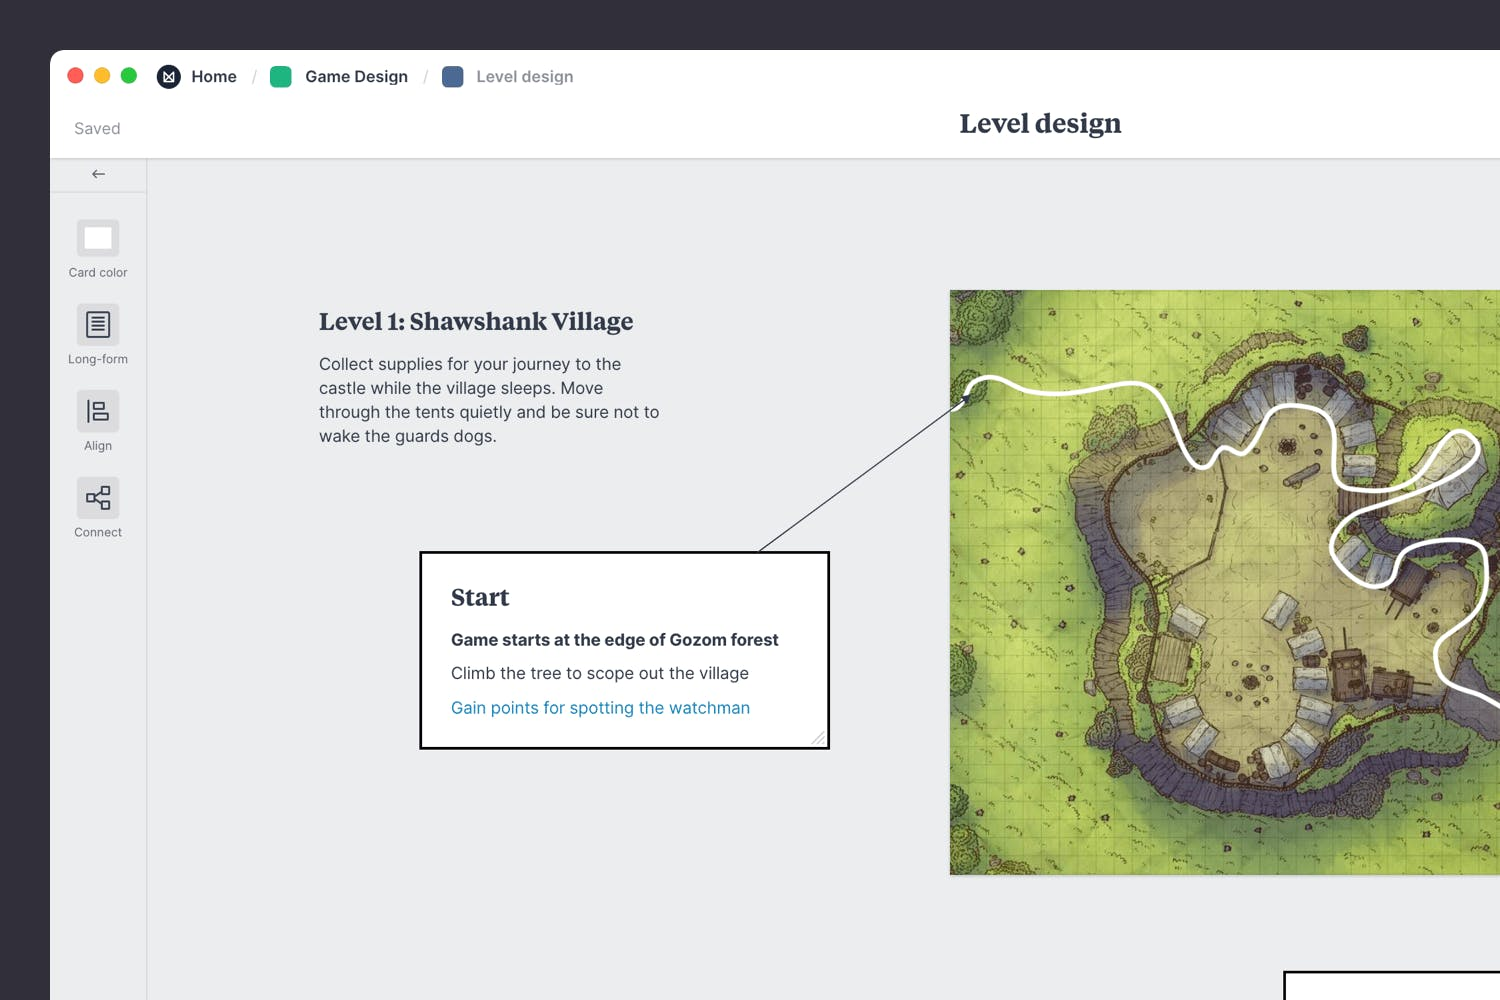 Defining the player journey in level design